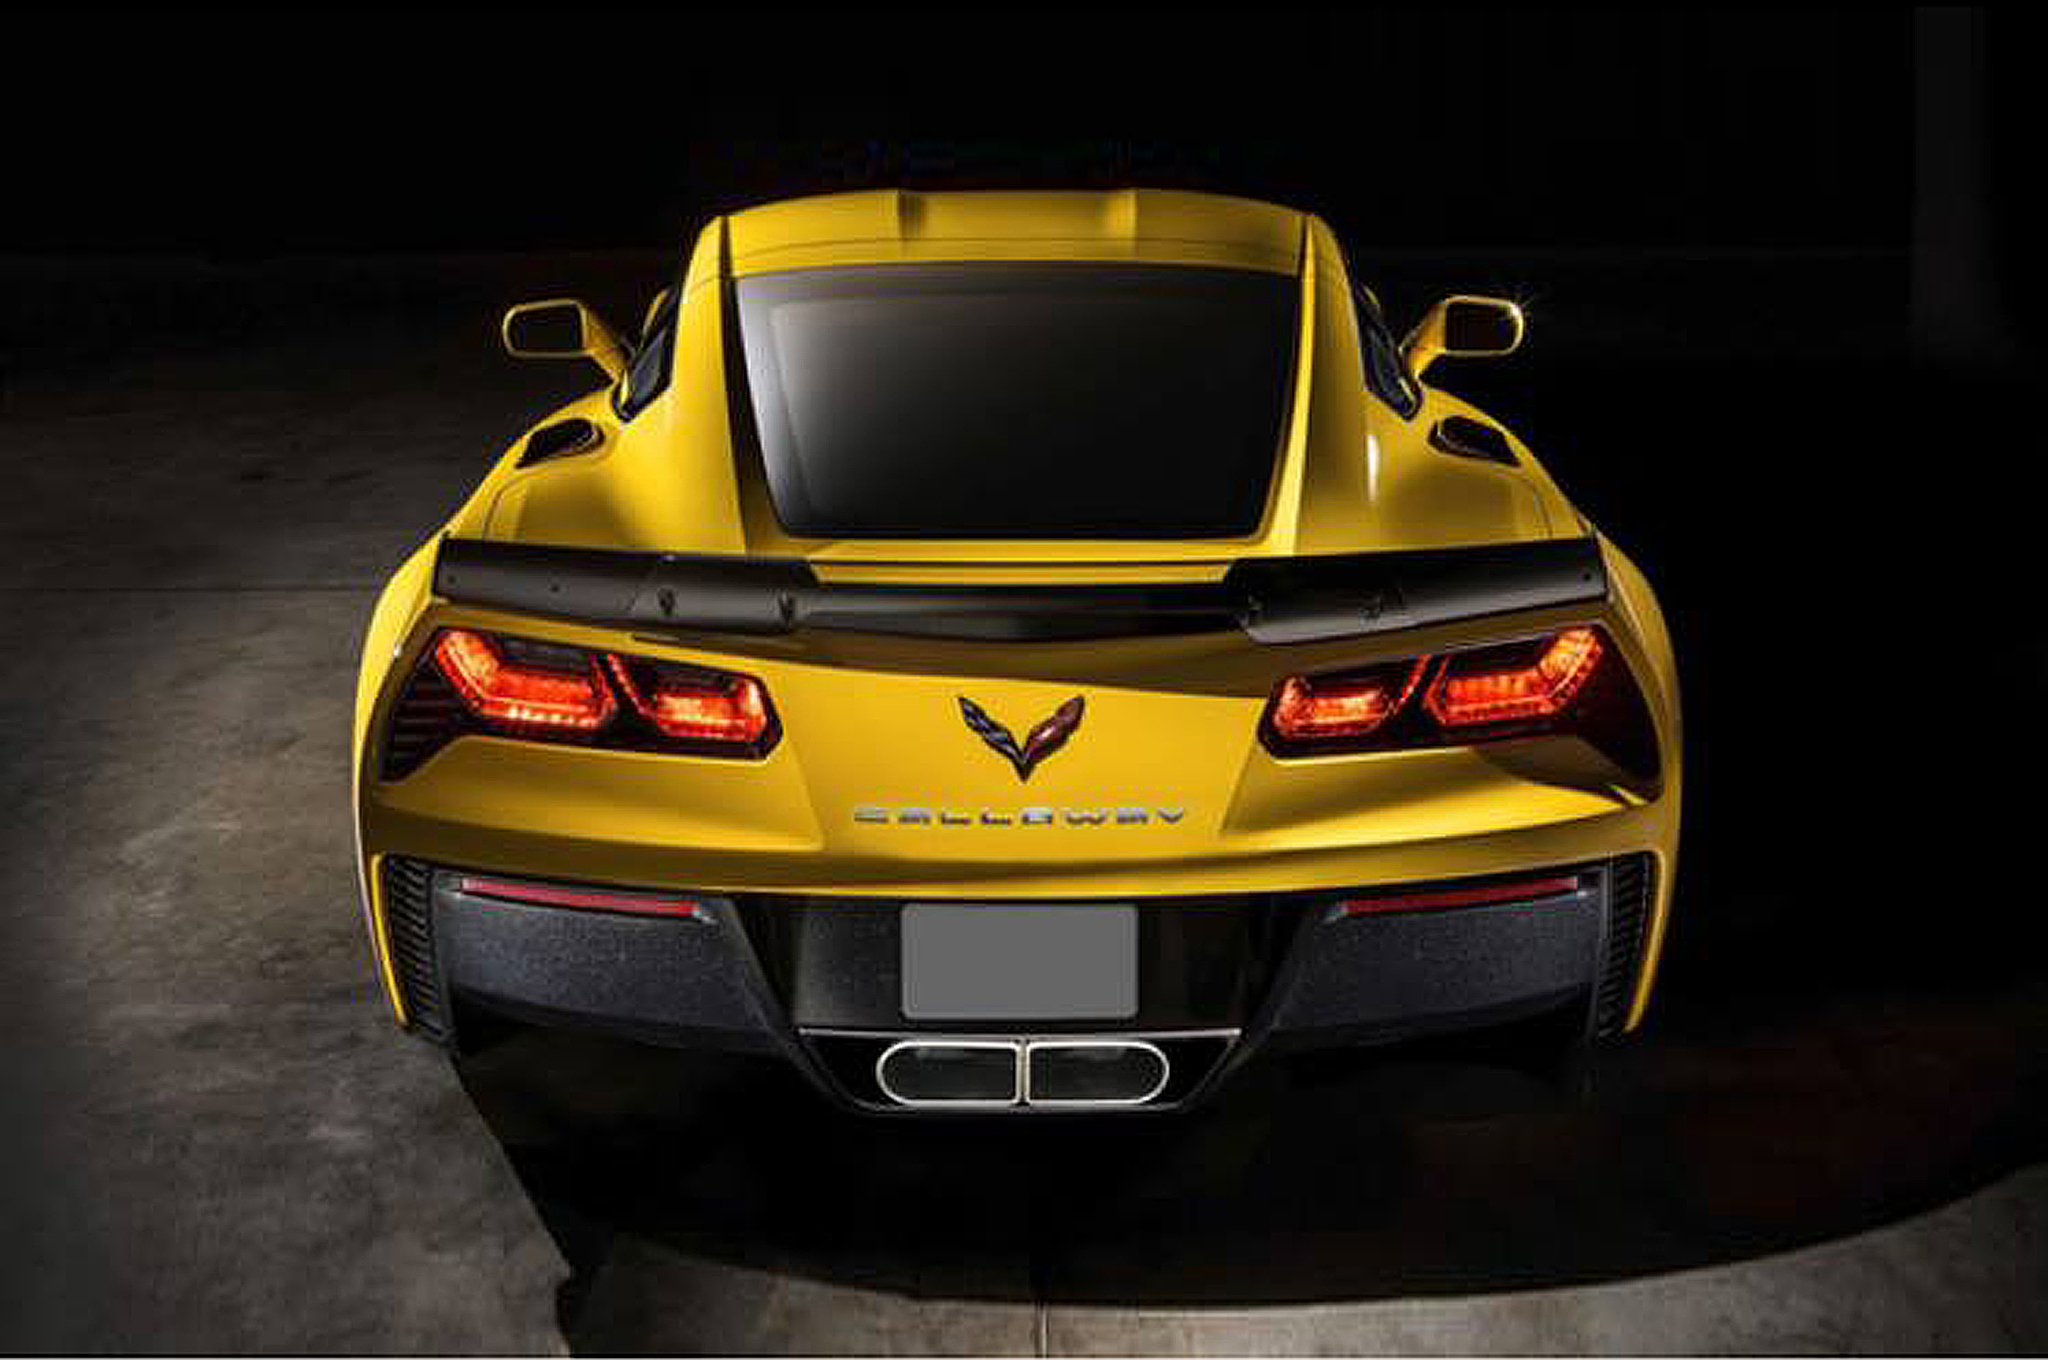 Callaway, Lingenfelter Upgrades Boost 2015 Corvette Z06 to Over 700 HP